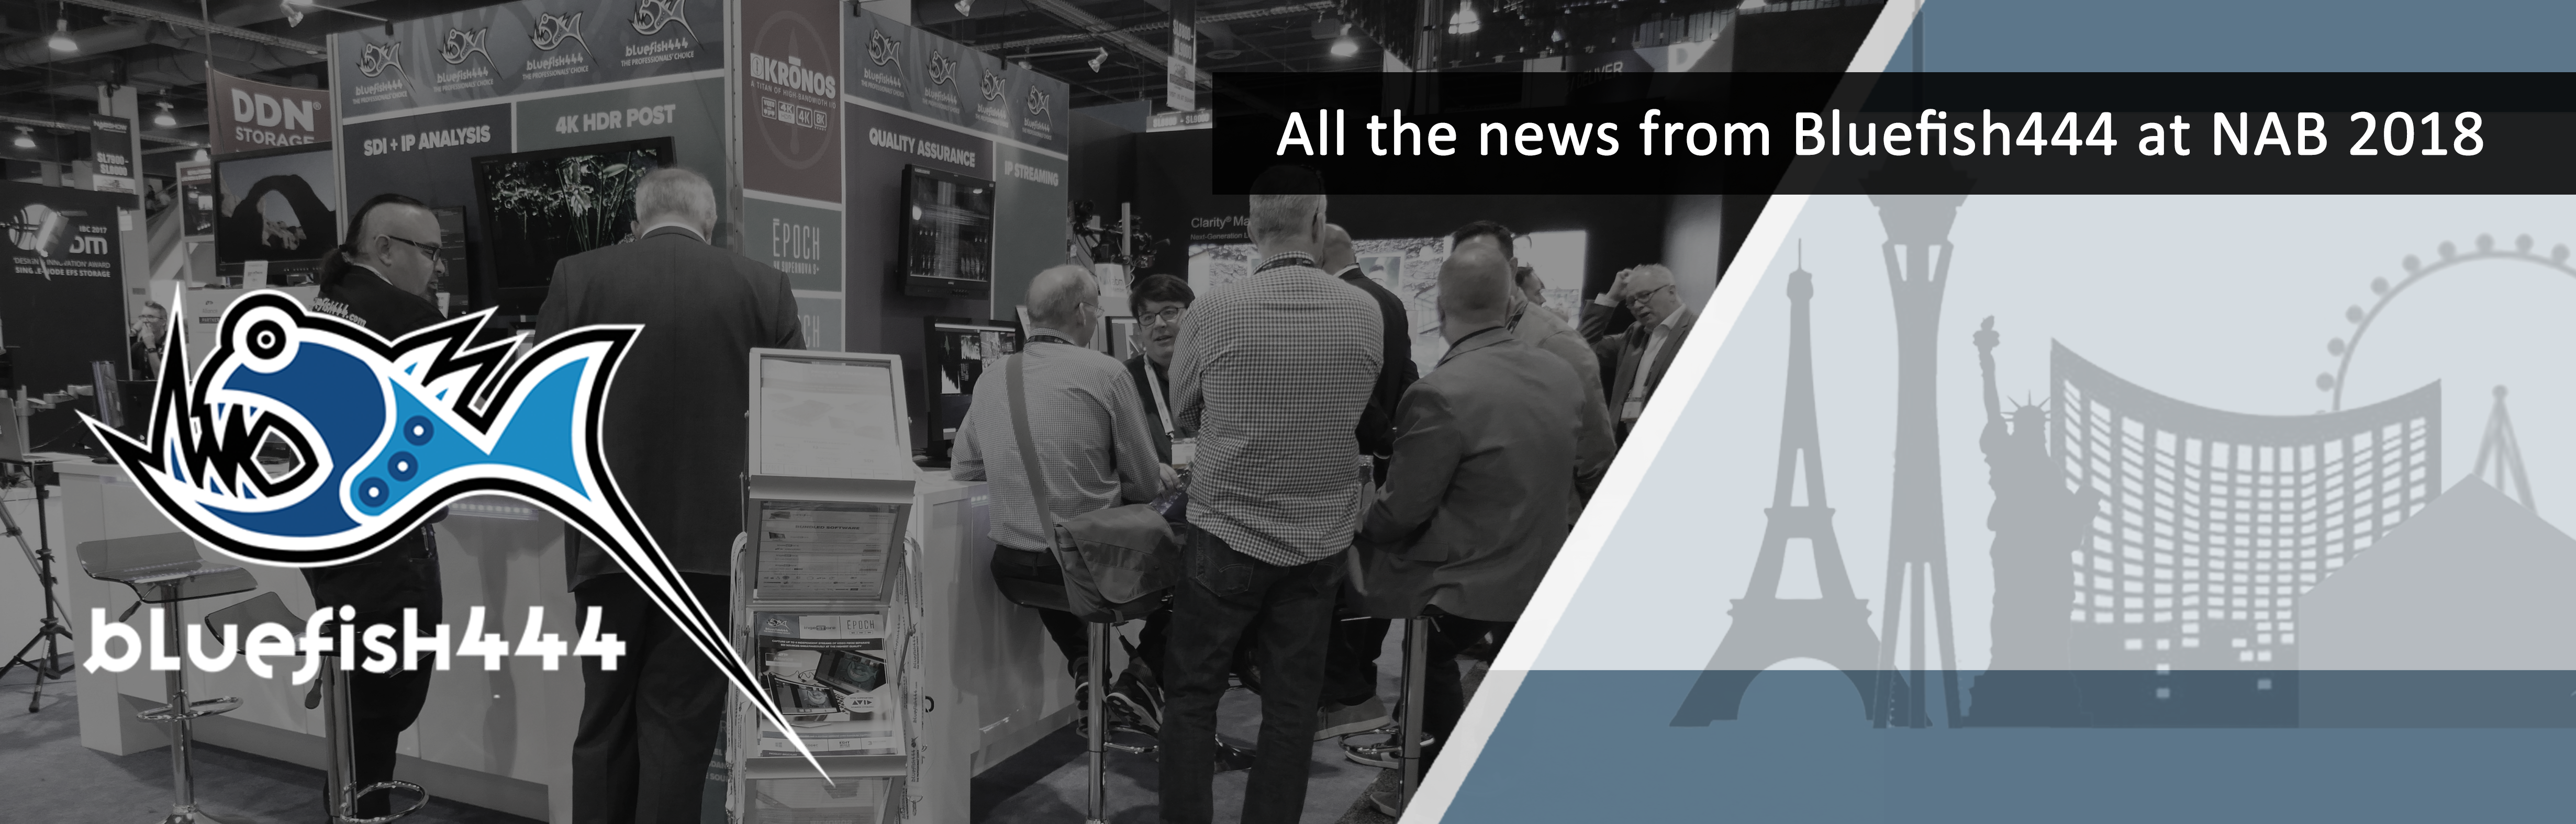 Post NAB 2018 News From Bluefish444_Header